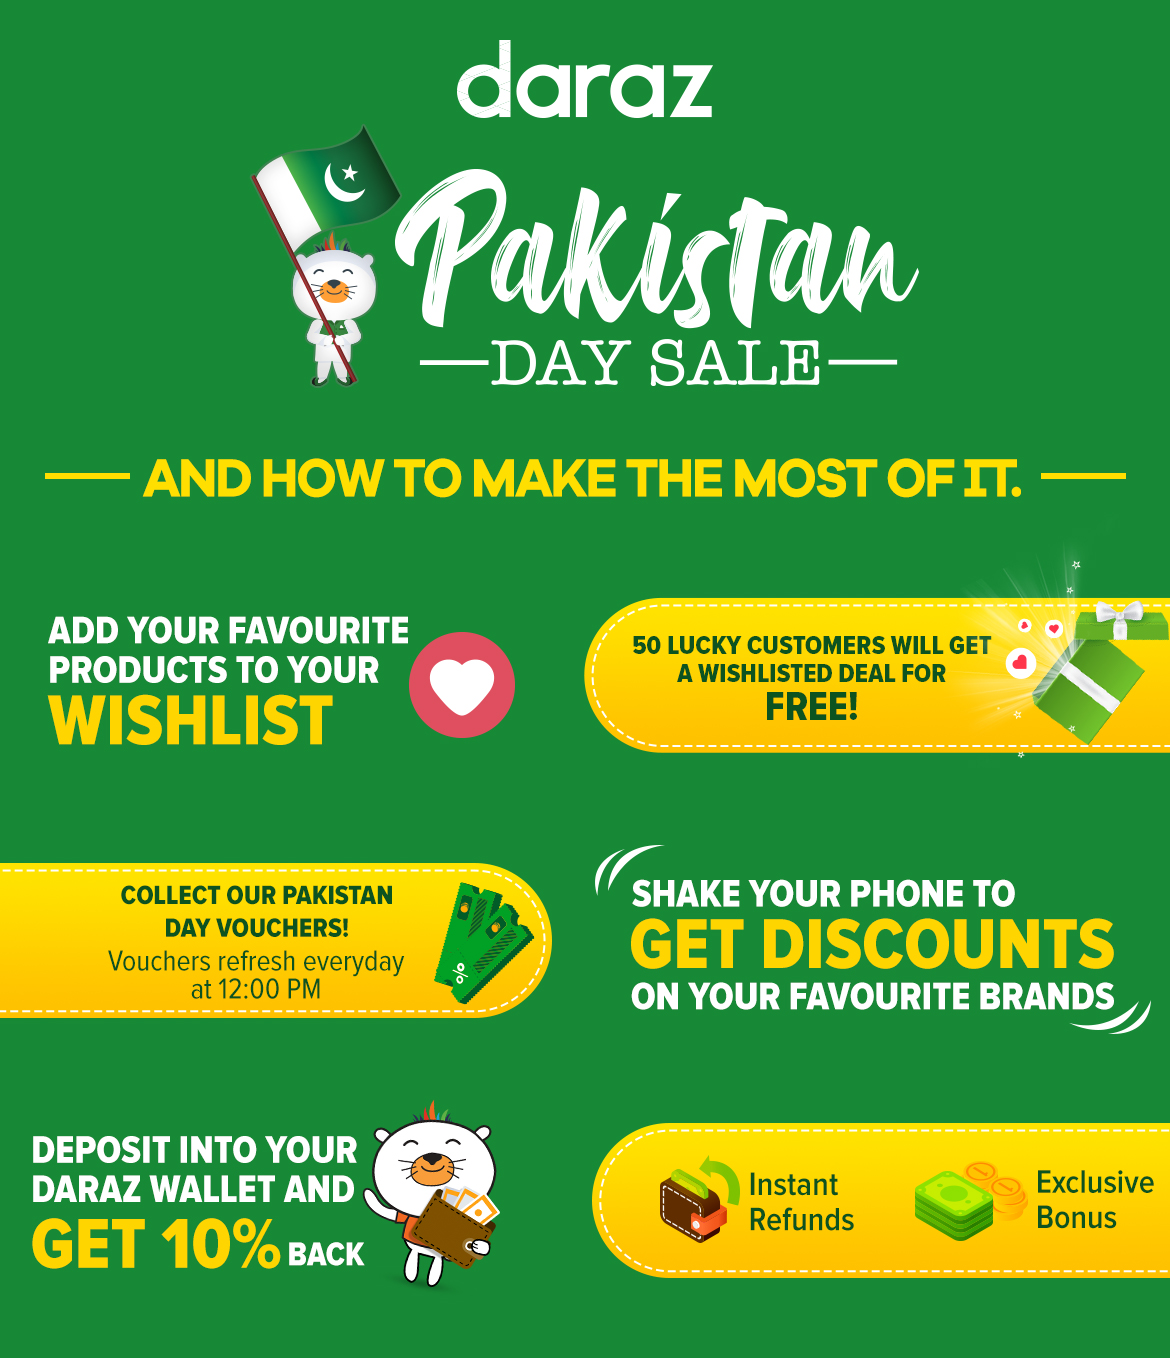 Daraz launches cars this Pakistan Day Sale with big discounts